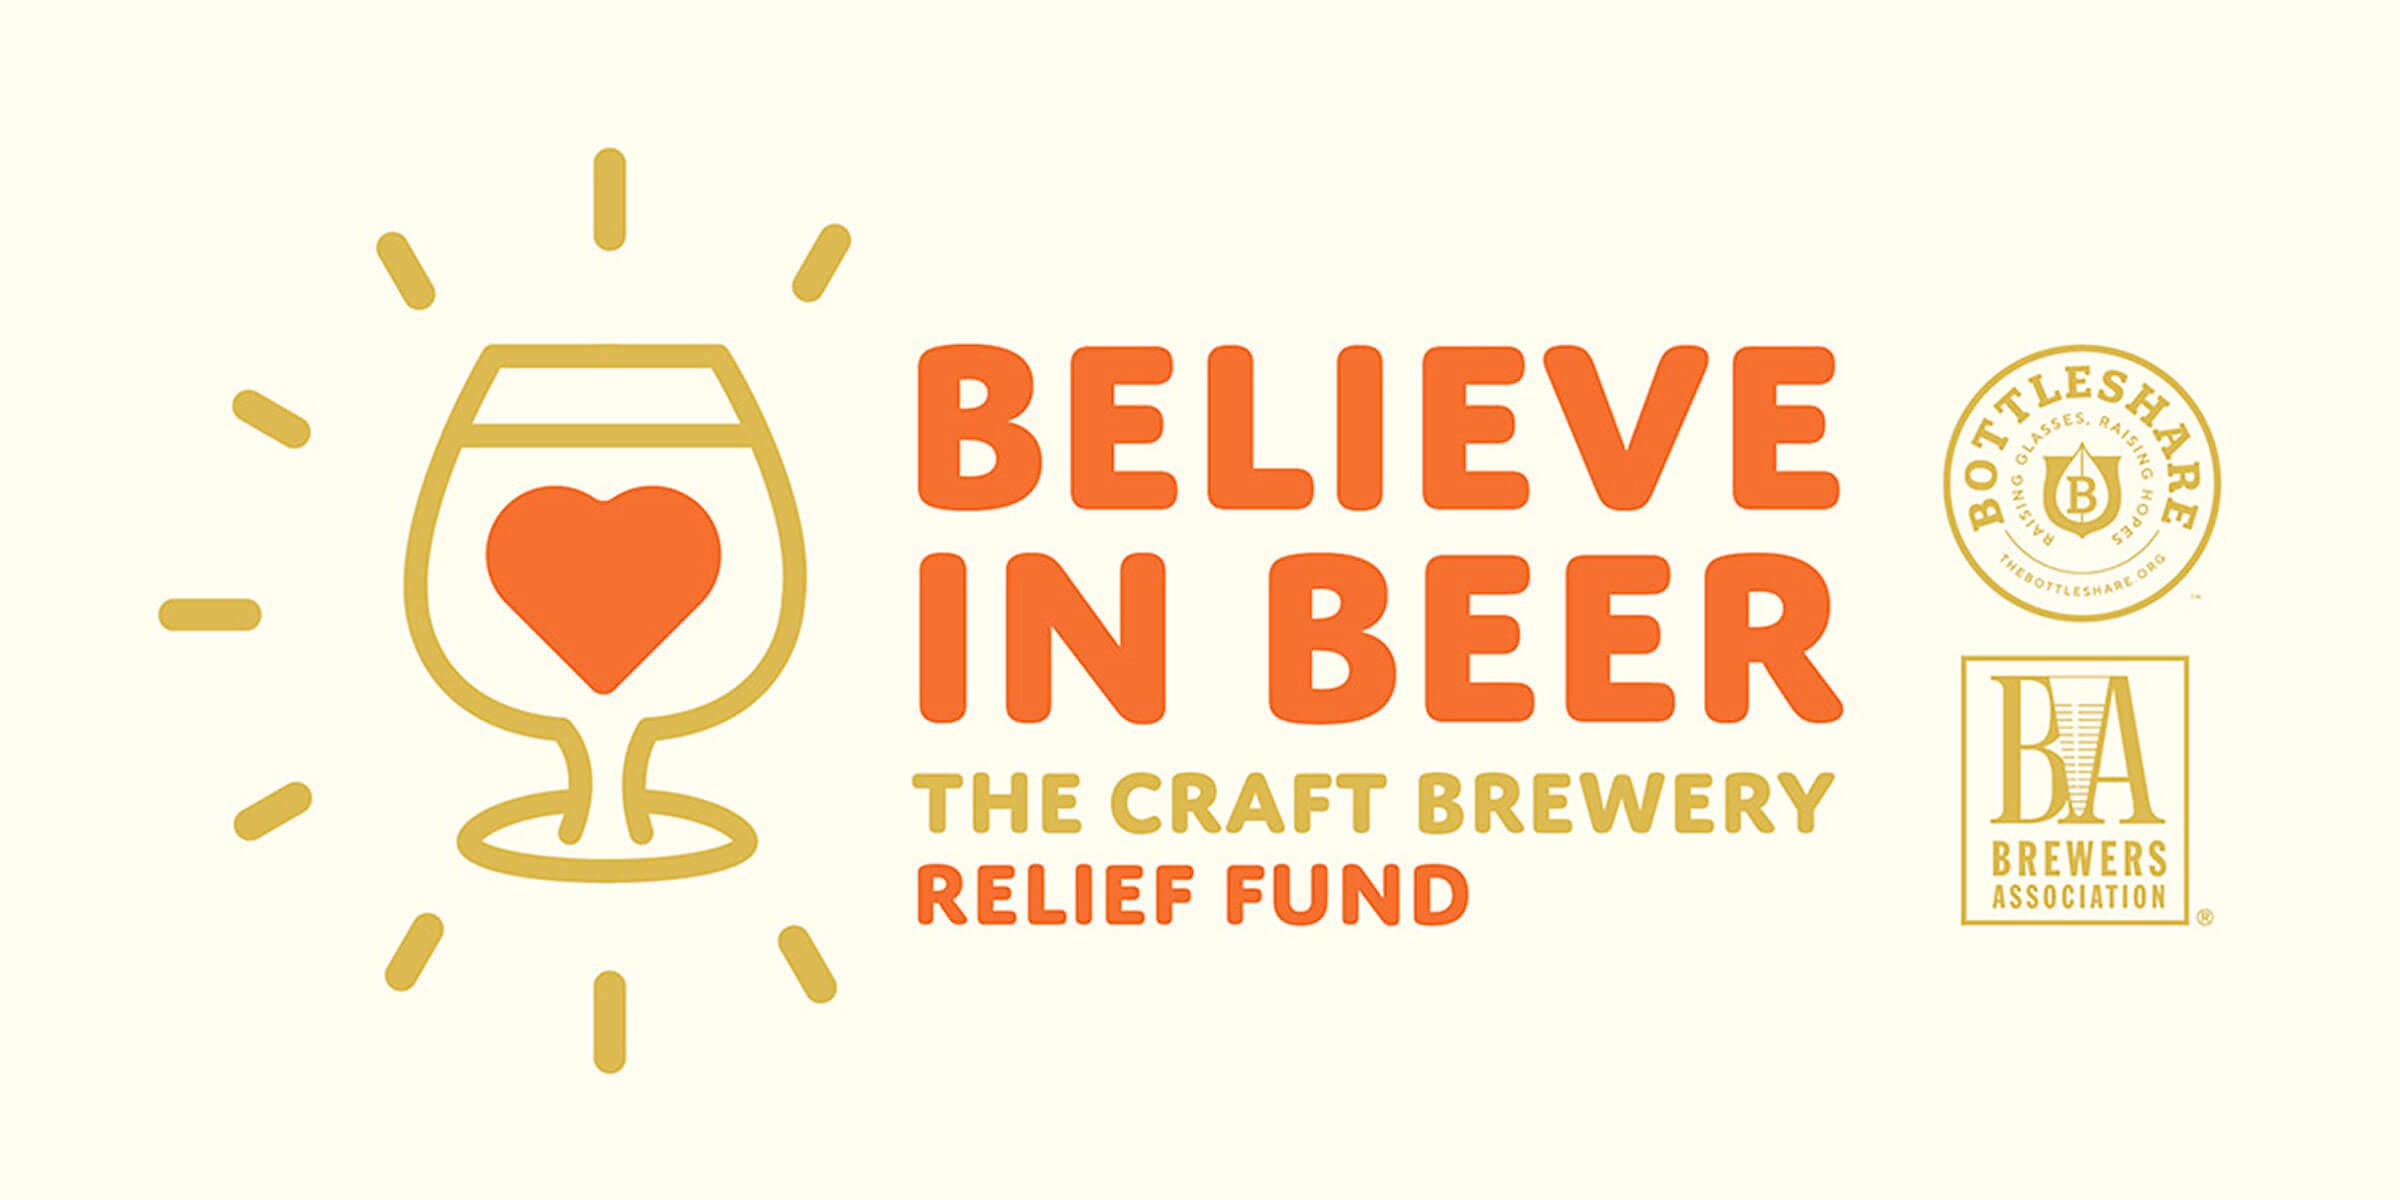 Brewers Association has partnered with Bottleshare to create the Believe in Beer Fund to support breweries and state brewers guilds impacted by COVID-19.